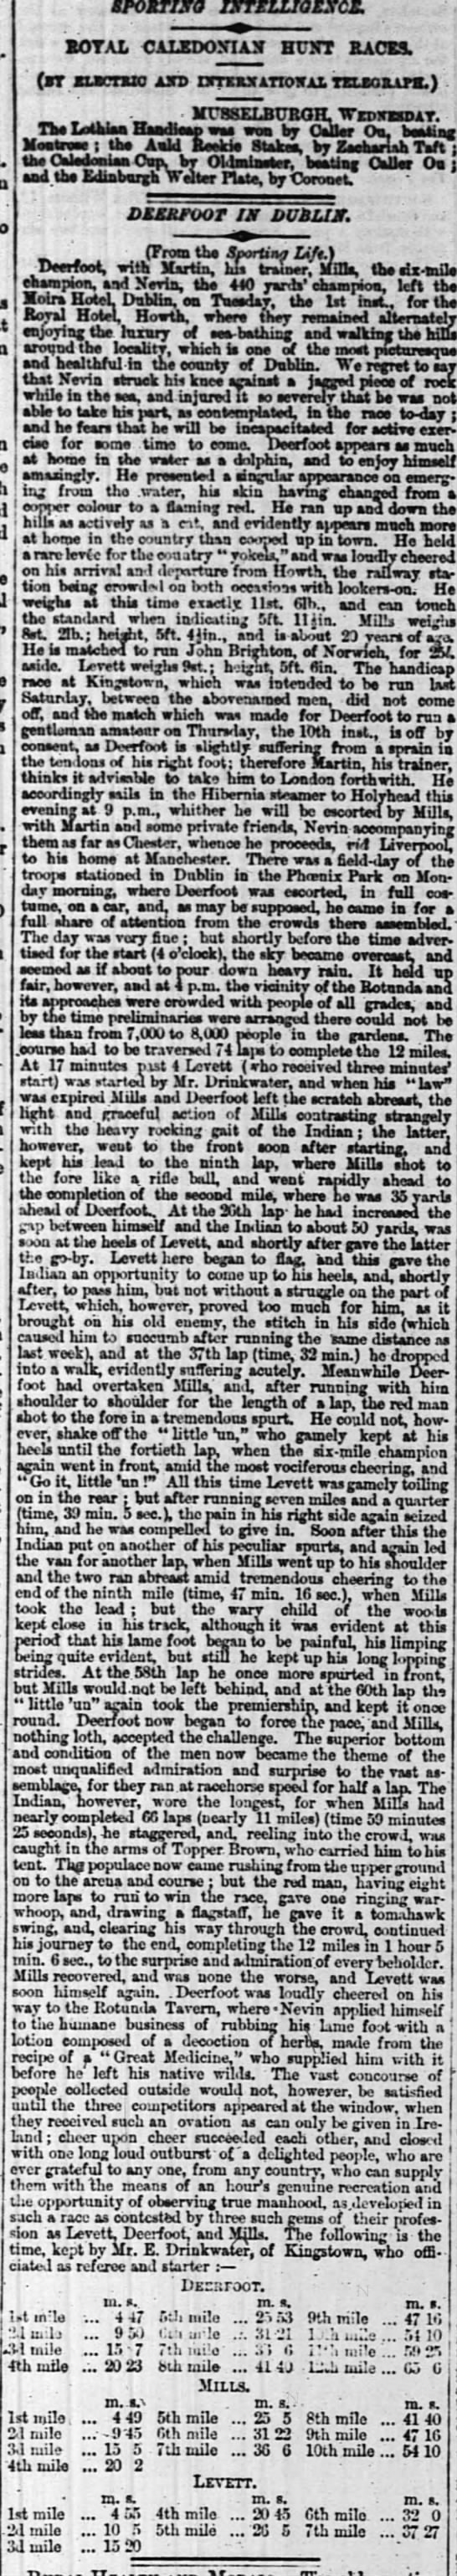 The Times (London) 10 October 1861